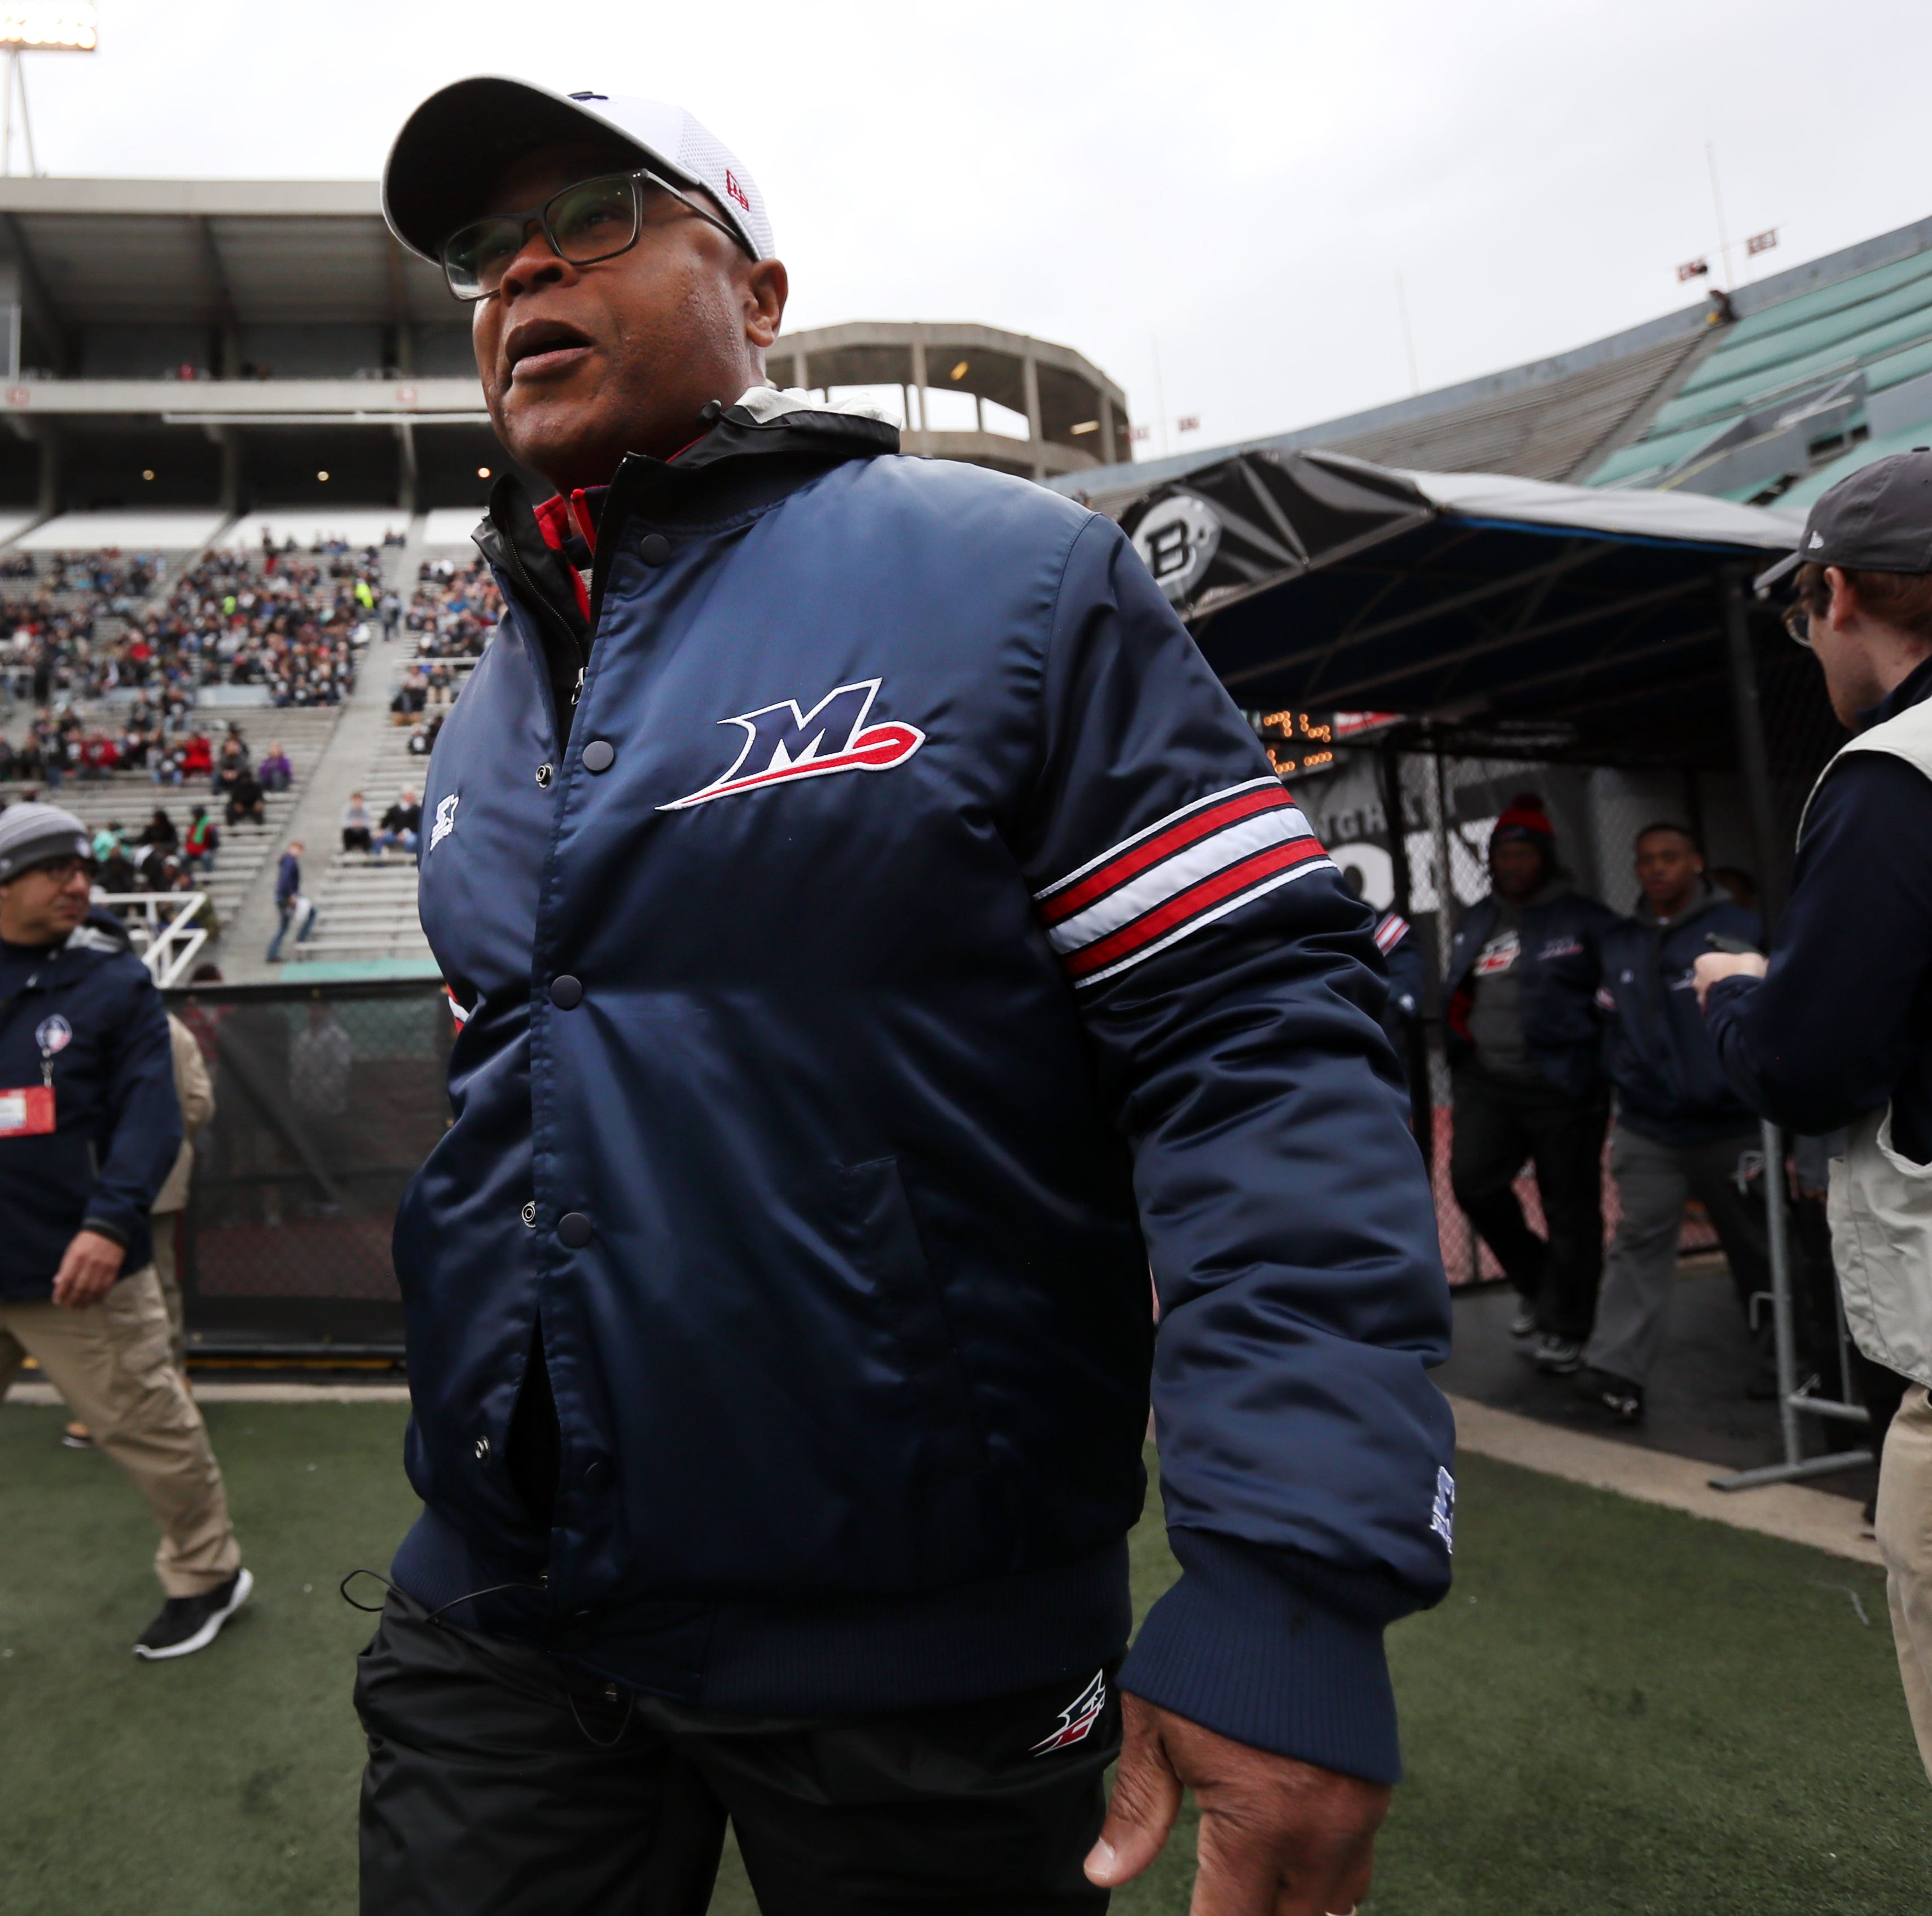 Super Bowl champion ready to bring Starter back to its glory days beginning with AAF